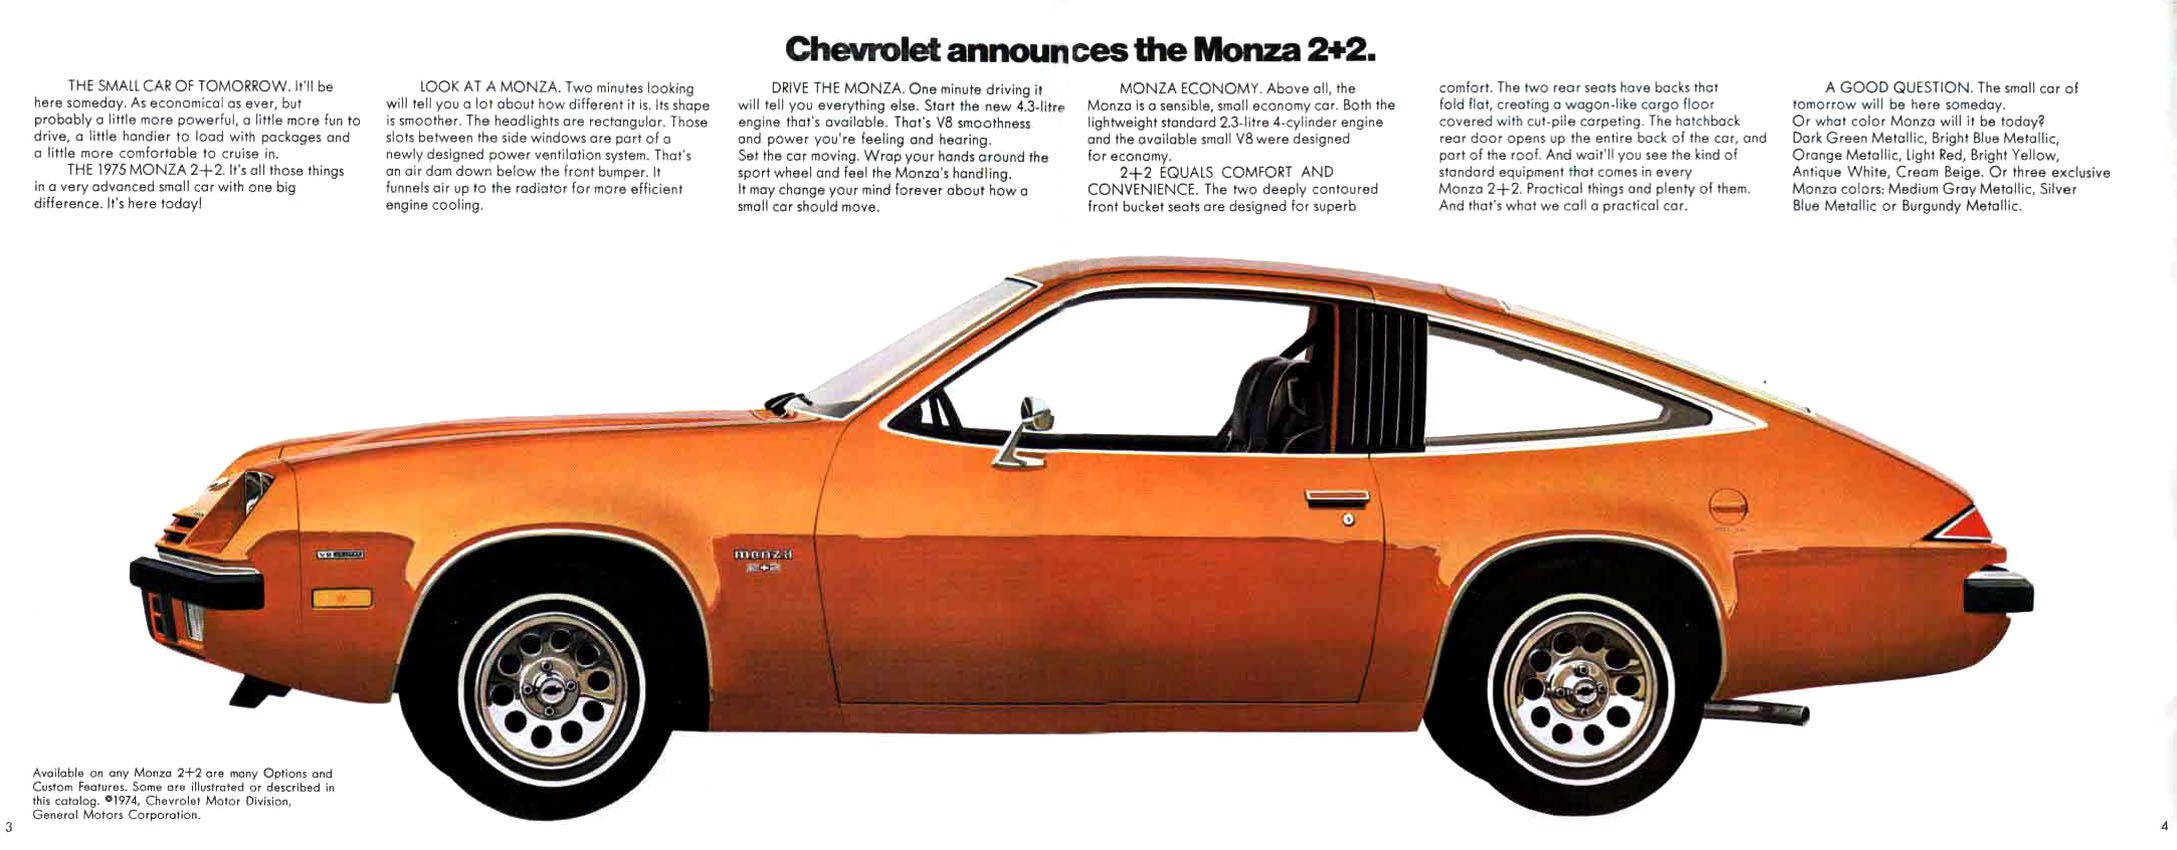 1980 Chevrolet Monza I Owned One If These Worst Car Ever